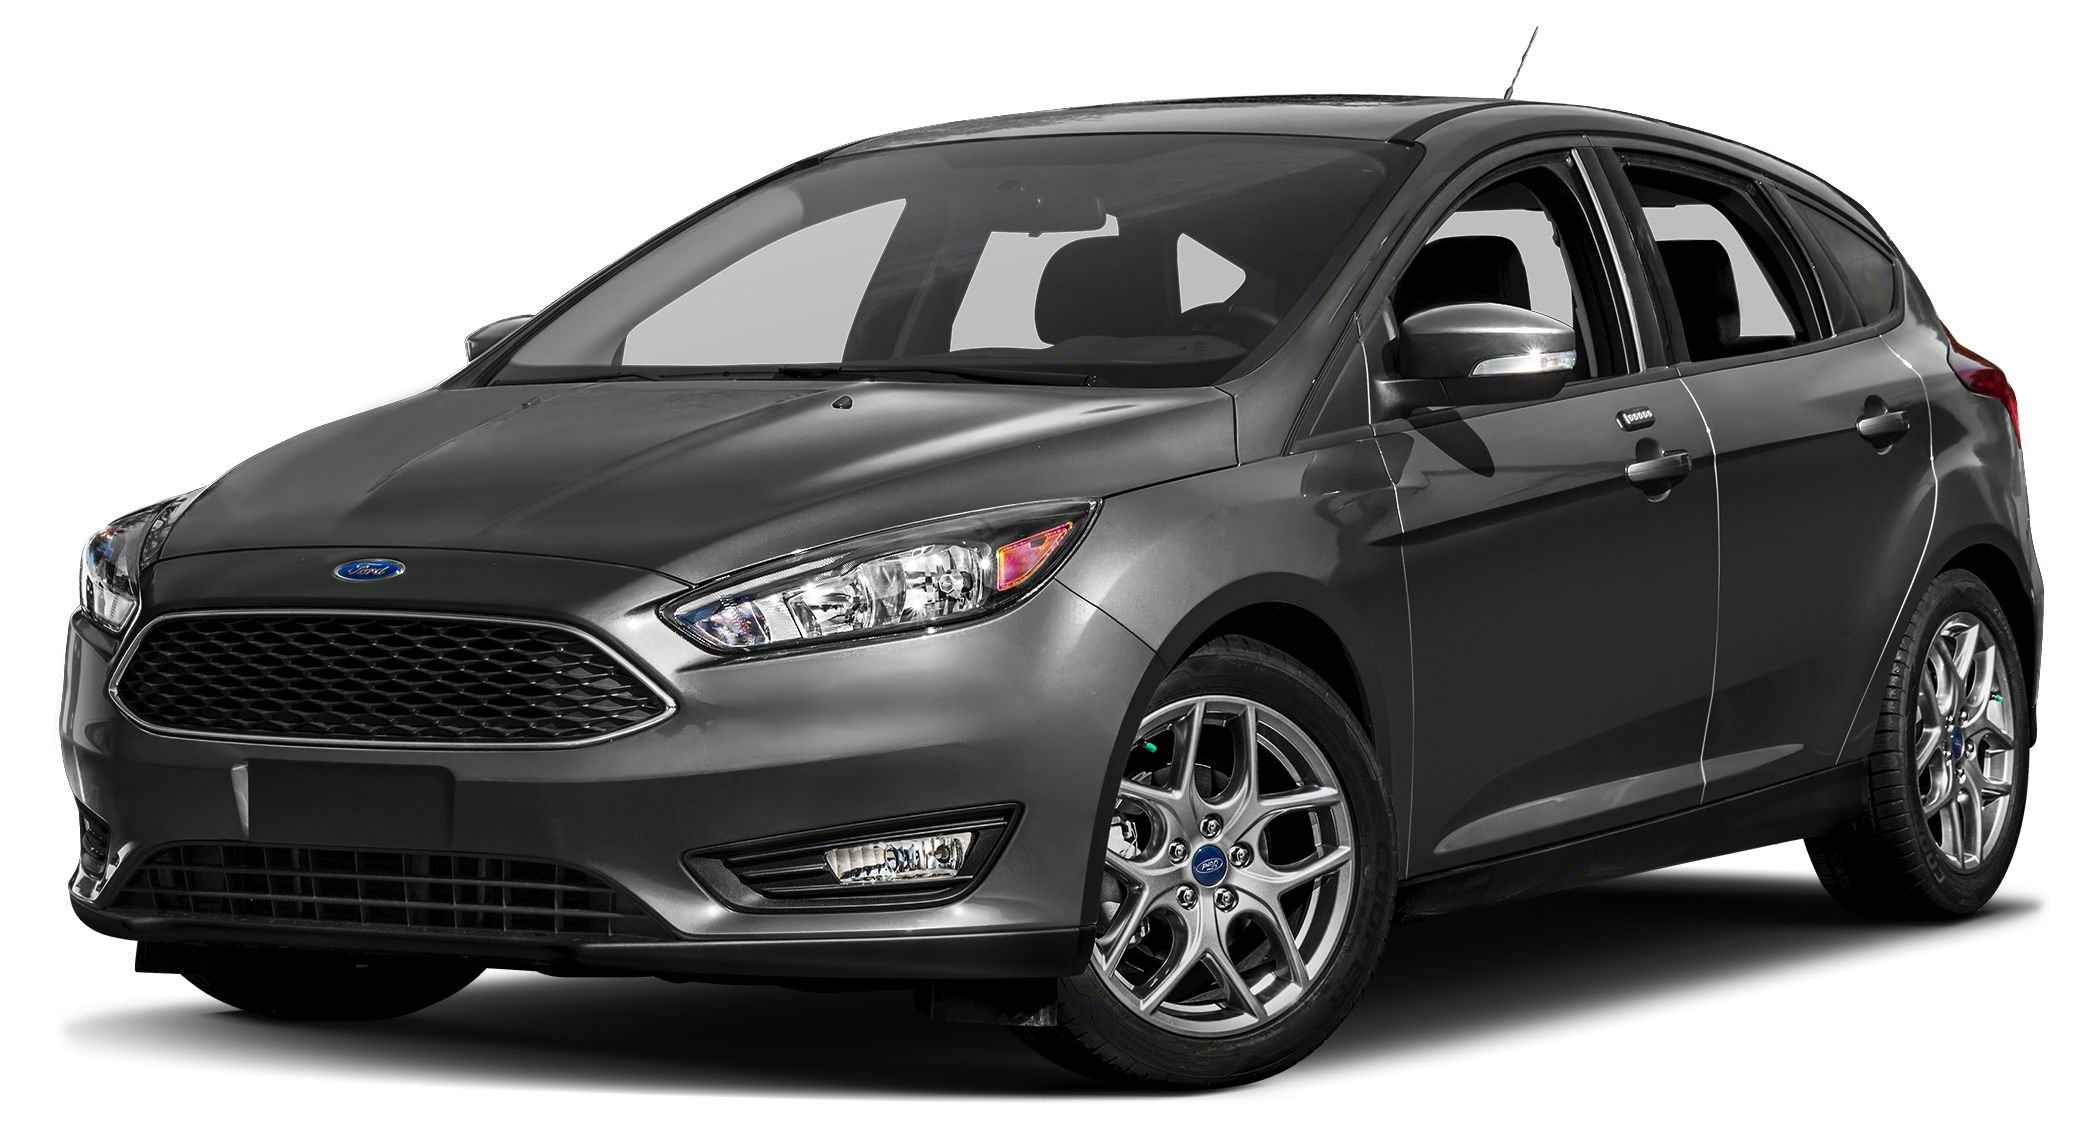 2015 Ford Focus SE LEATHER APPEARANCE PACKAGE HATCHBACK AMBIENT LIGHTING FOG LAM